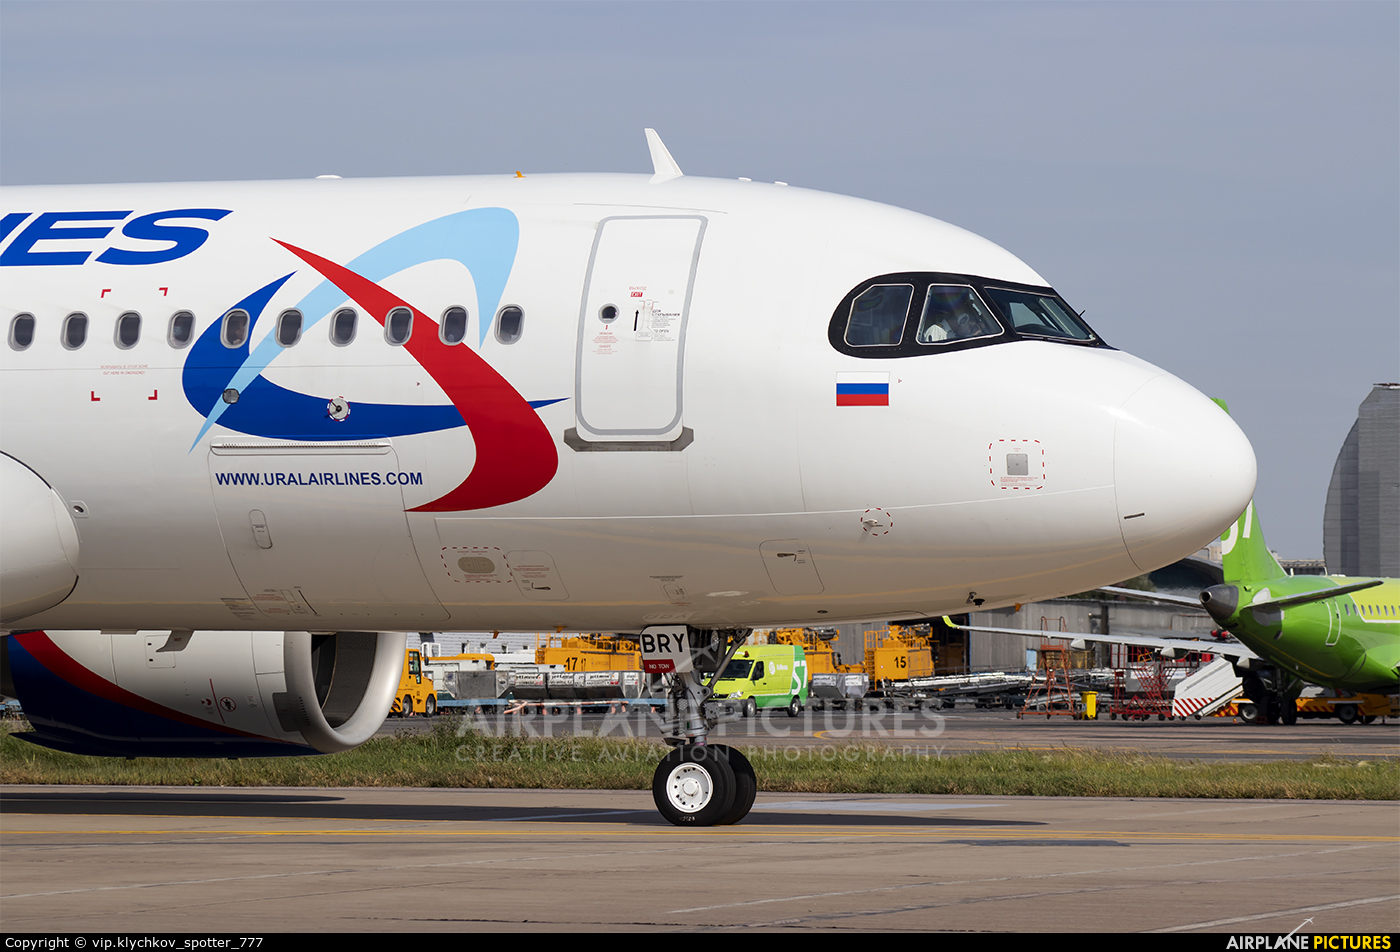 Ural Airlines VP-BRY aircraft at Moscow - Domodedovo